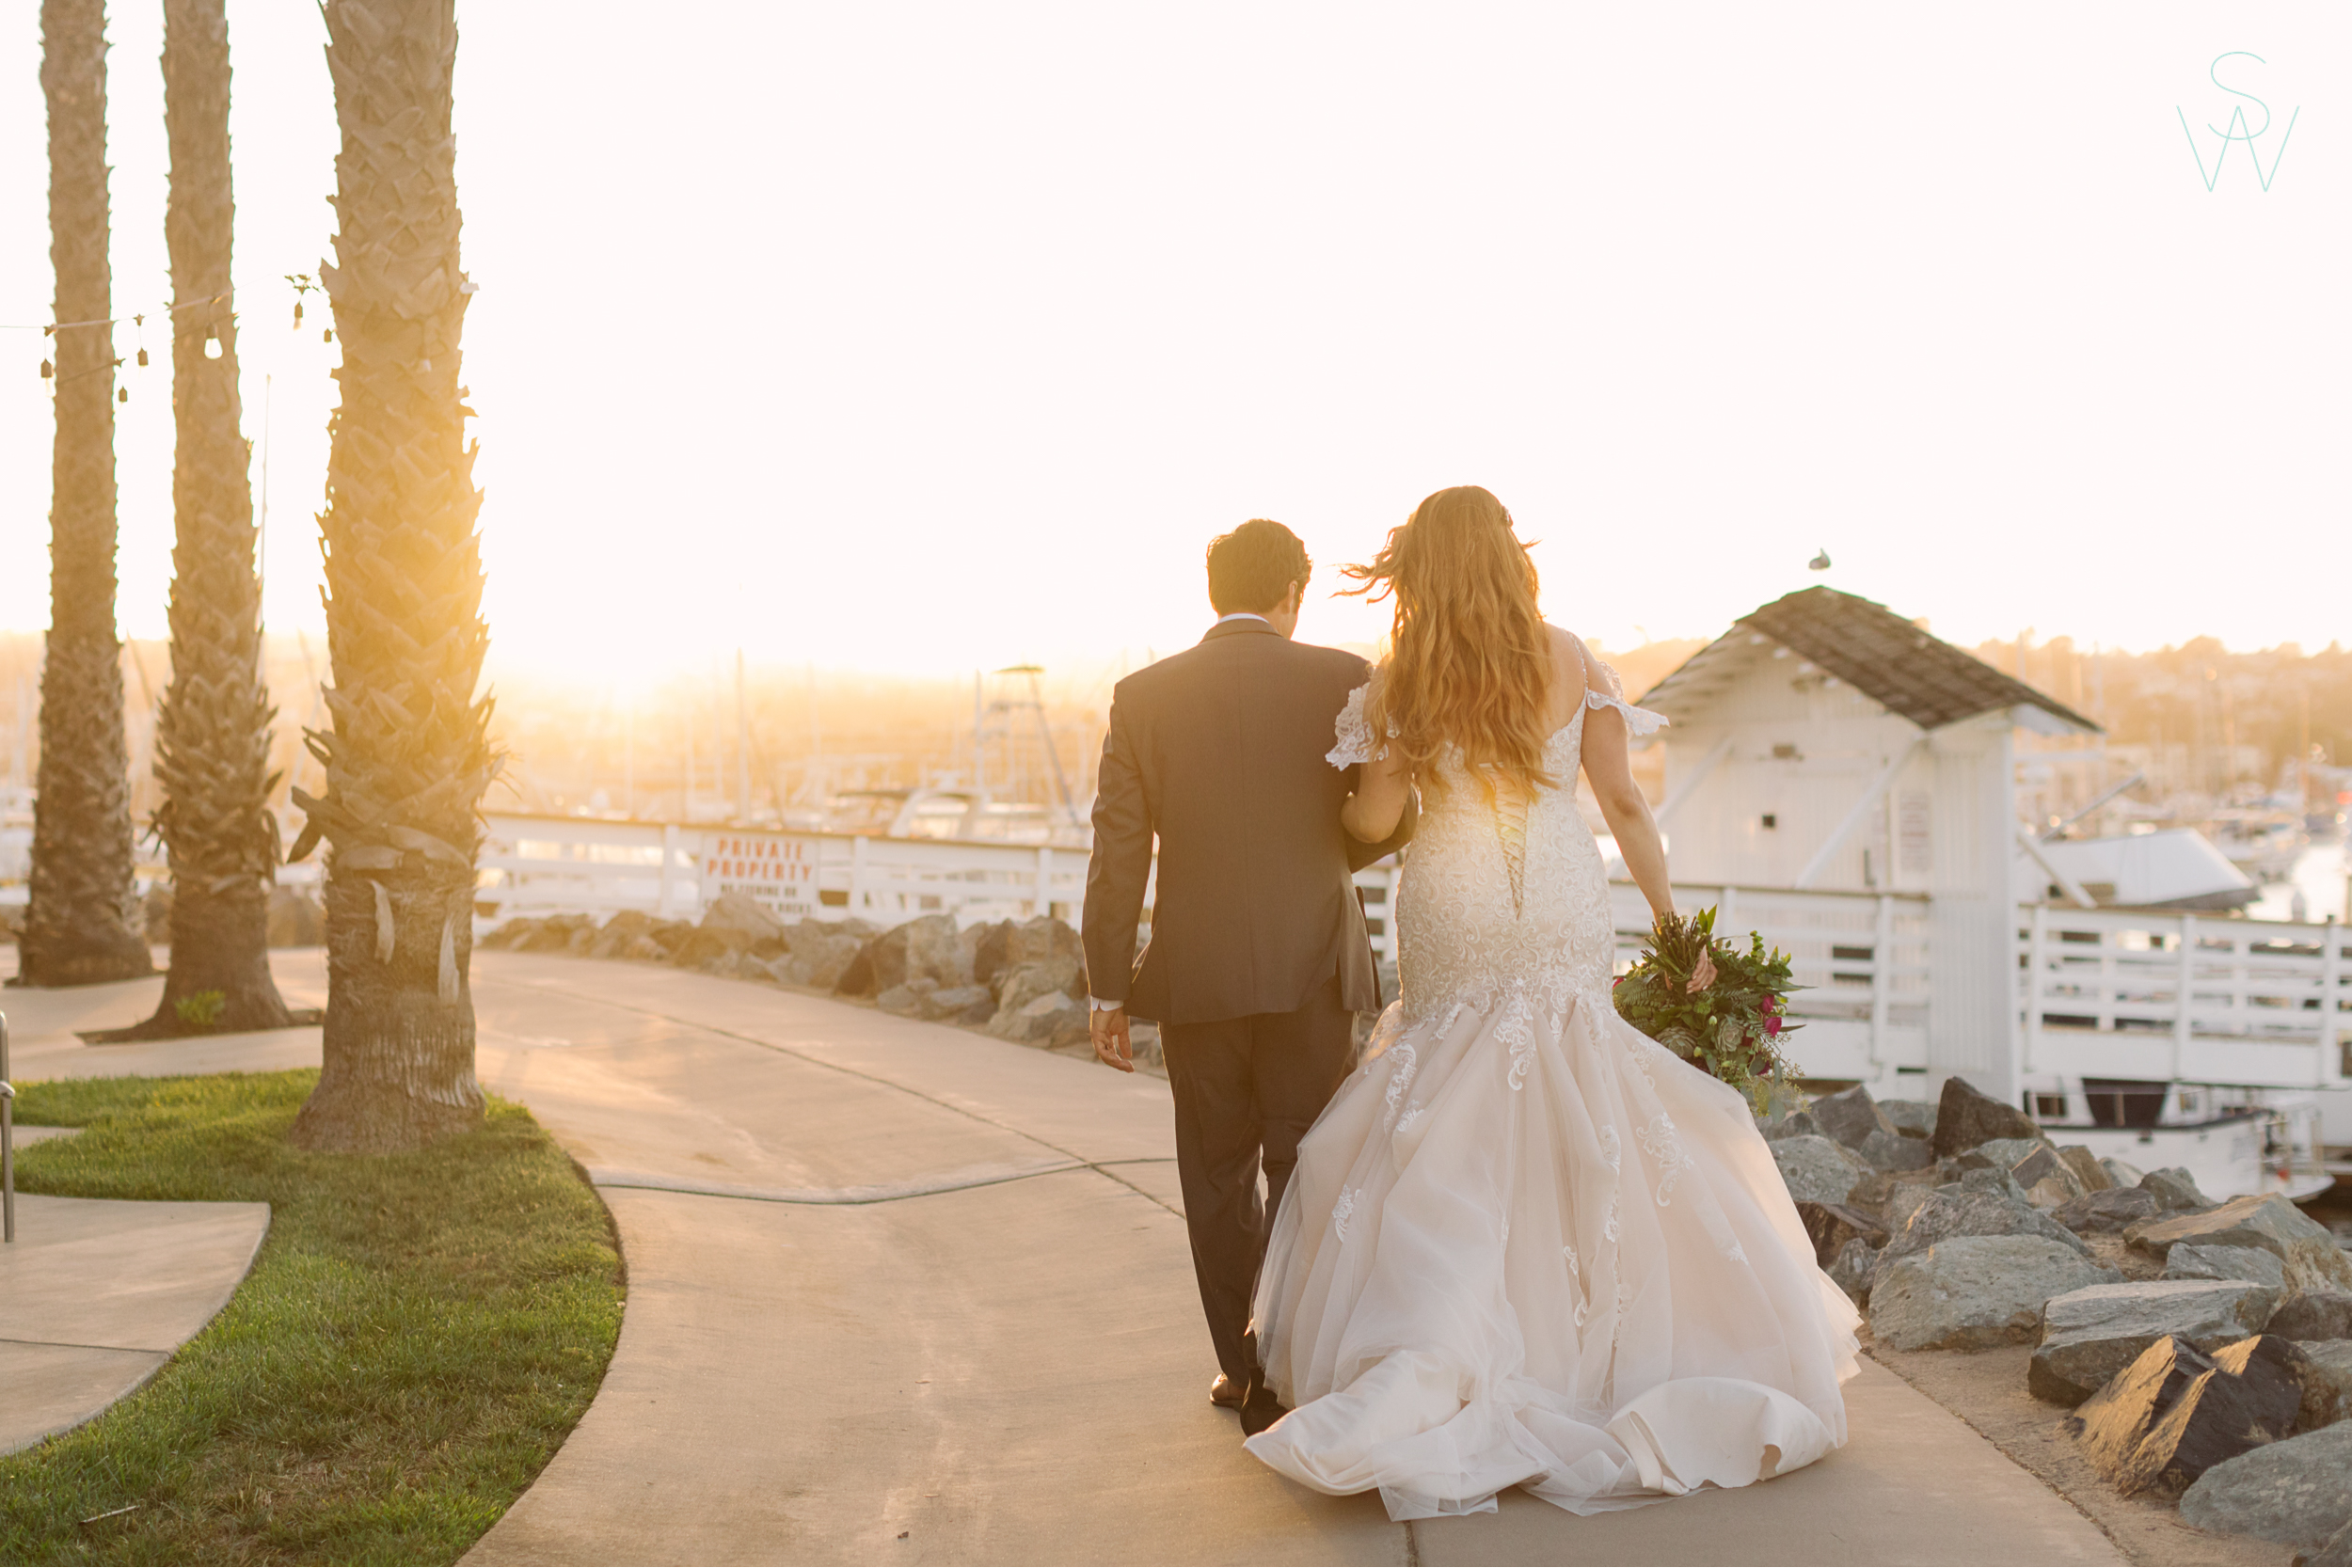 167San.diego.wedding.shewanders.photography.JPG